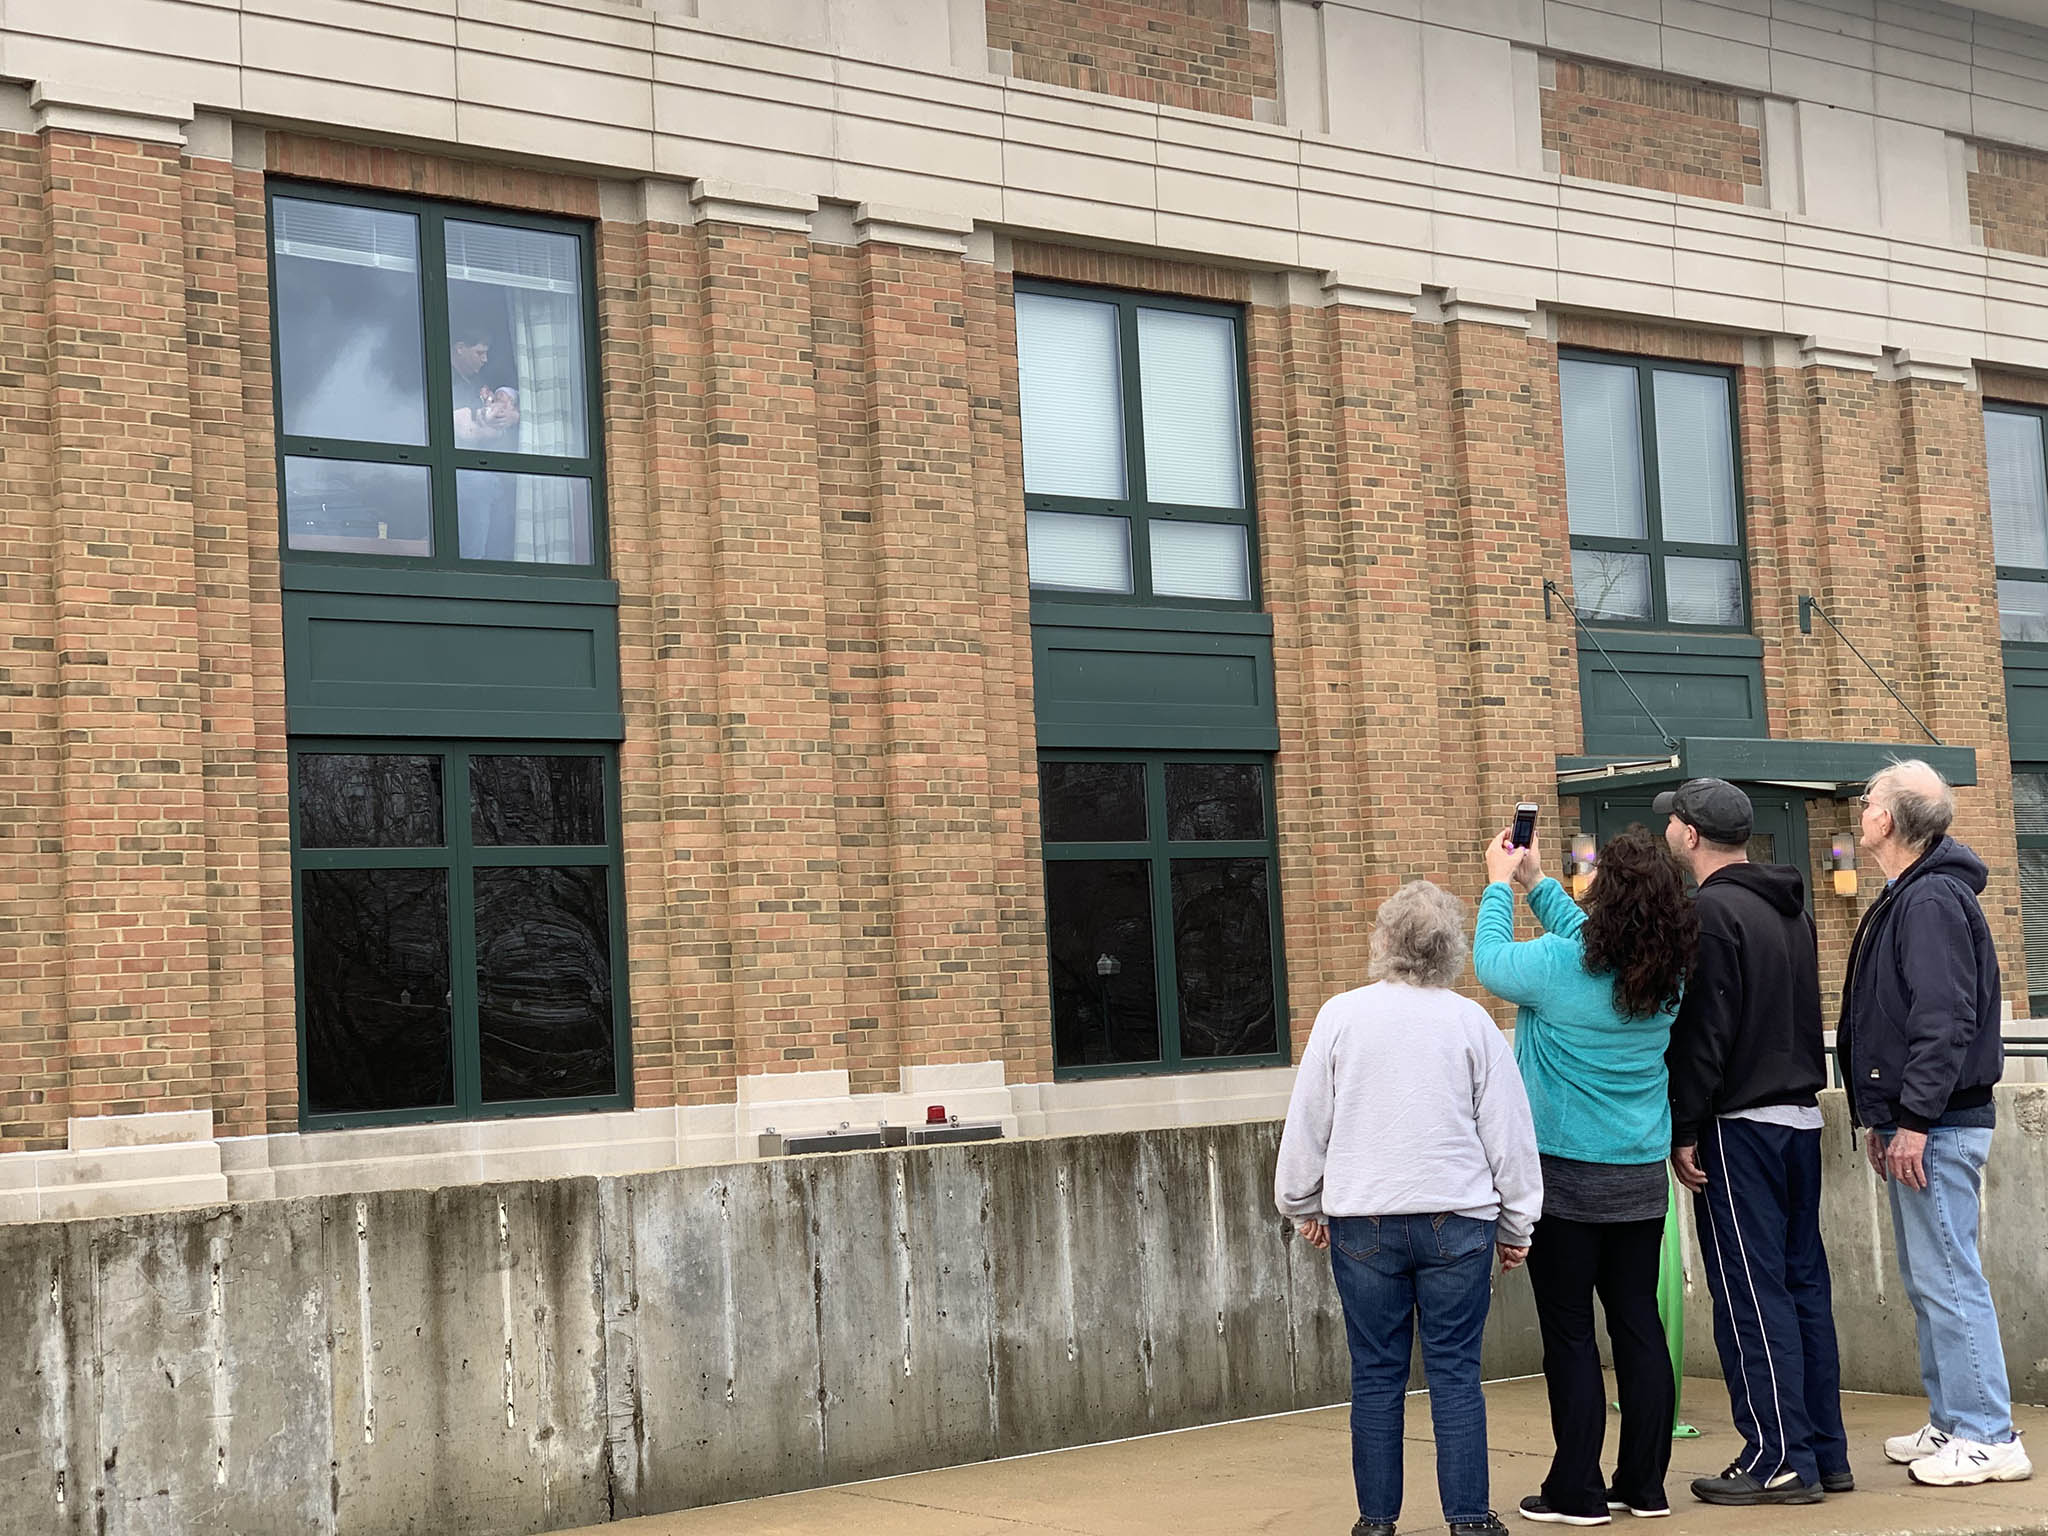 A family takes pictures of a father holding a newborn baby in the window at Columbus Regional Hospital.